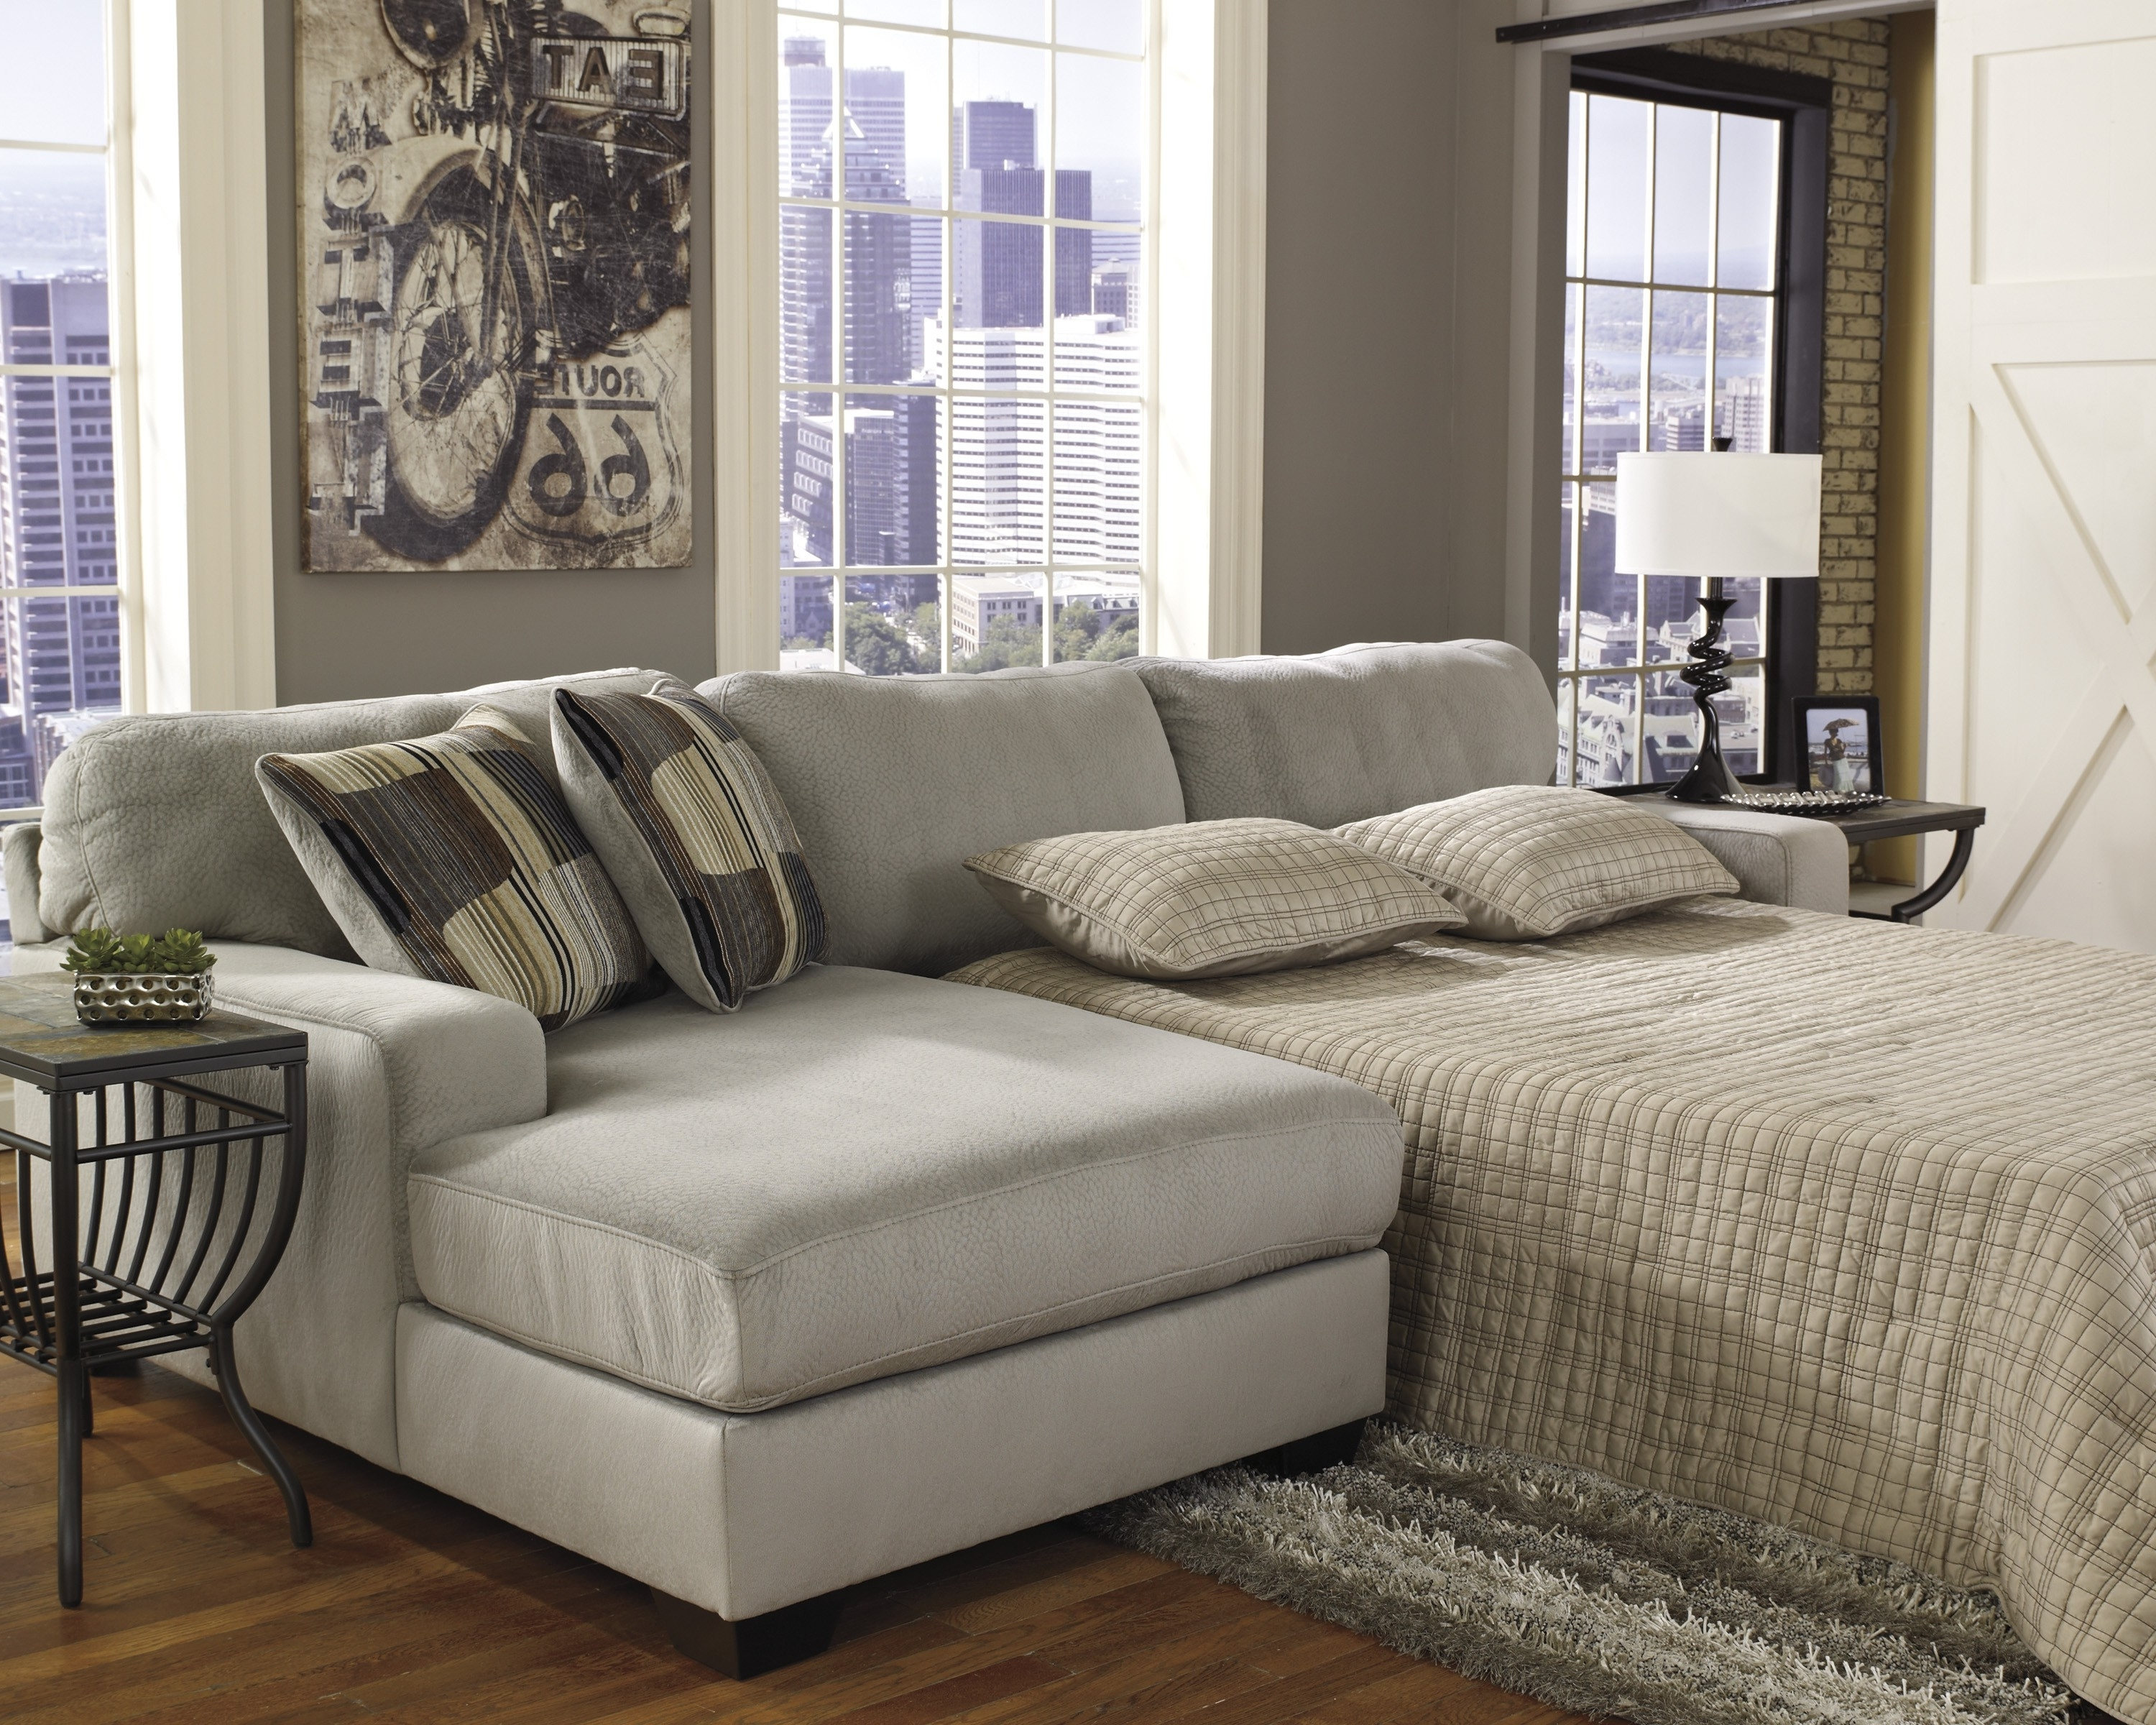 Most Current L Shaped Sectional Sleeper Sofas In Sofas : Modular Sofa U Shaped Sectional Small Sectional Couch (View 6 of 15)